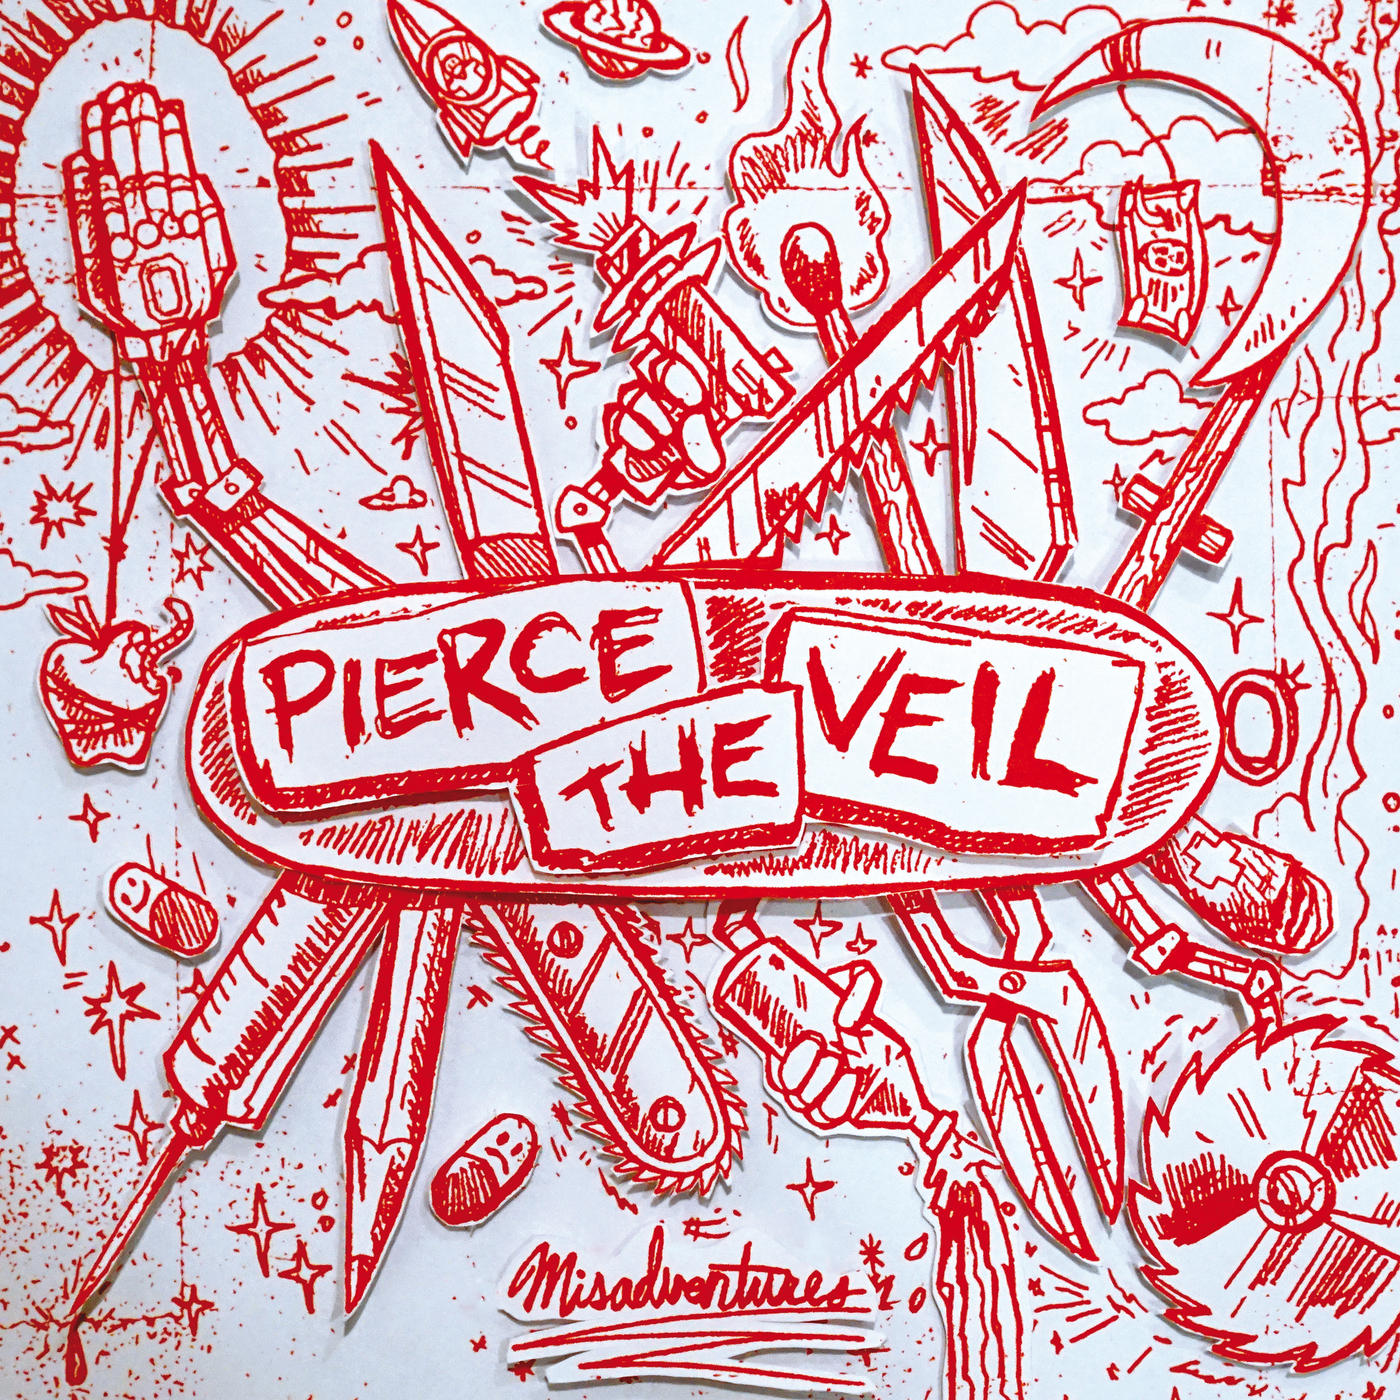 Pierce the Veil - Misadventures (2016)